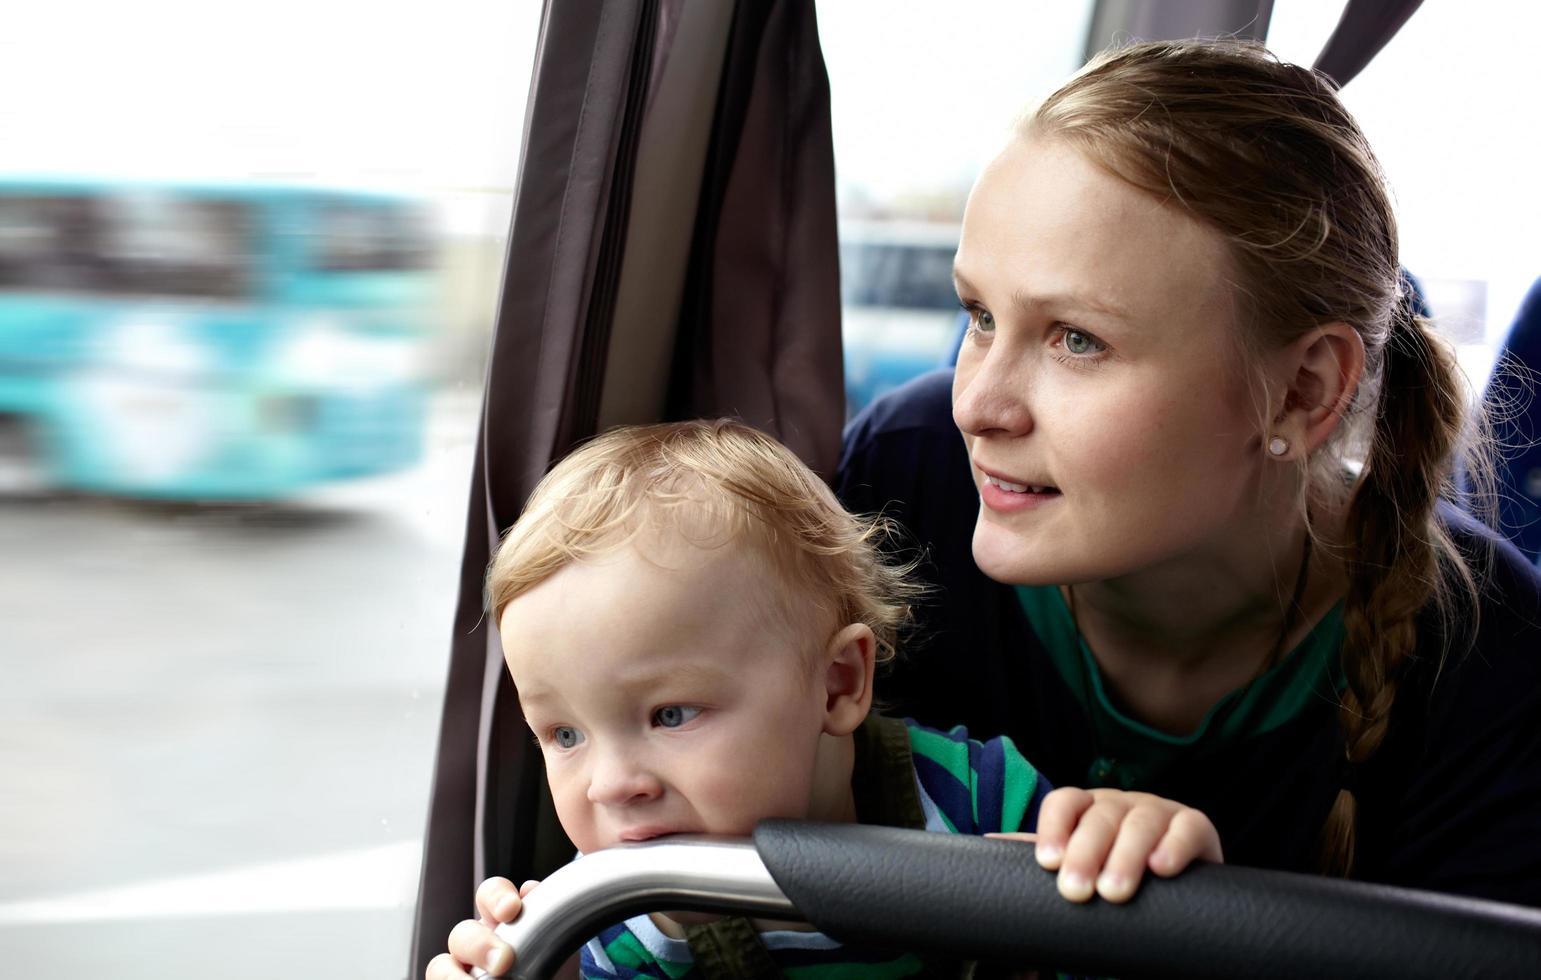 Mother and son on a bus photo